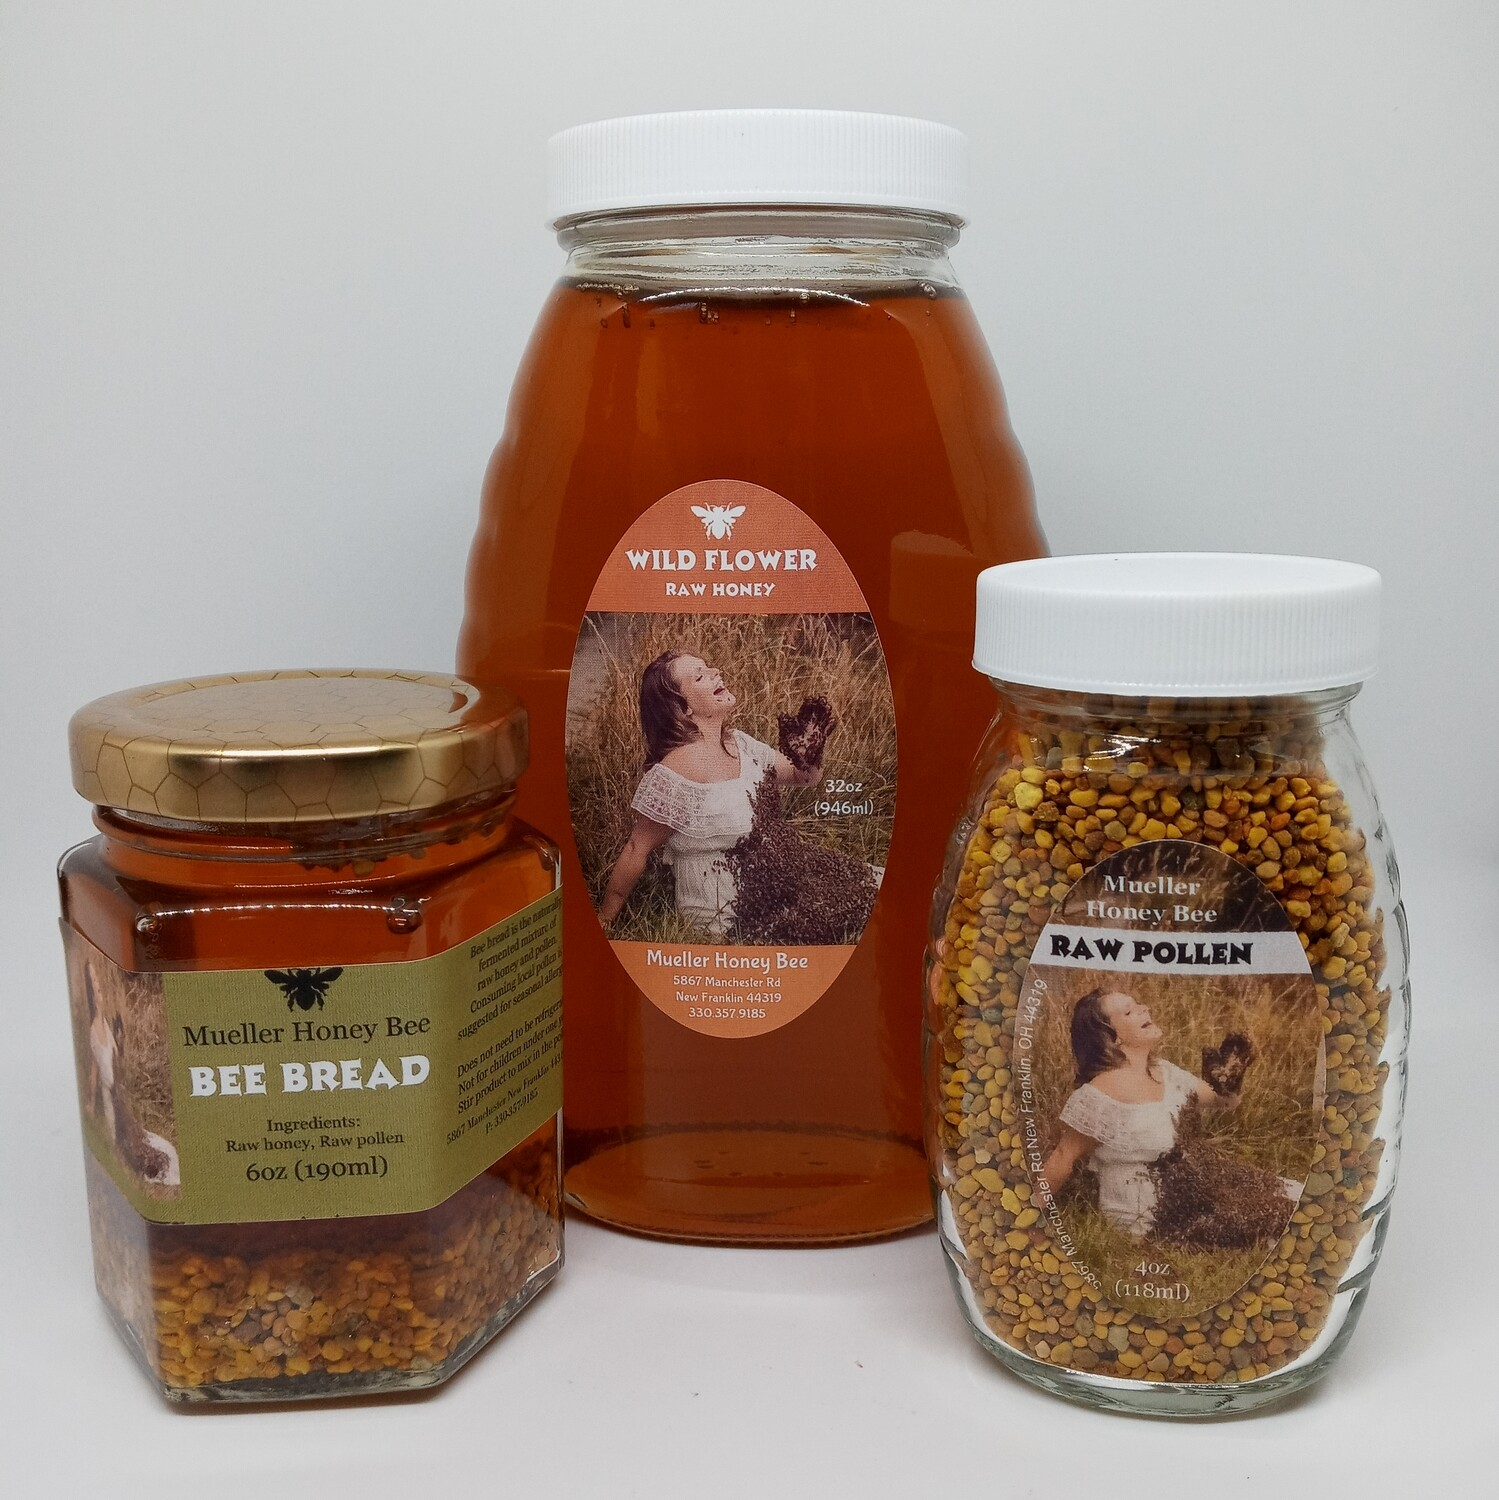 Glass Allergy Combo Pack - 4 oz Pollen, 6 oz Bee Bread and 32 oz Wildflower Honey